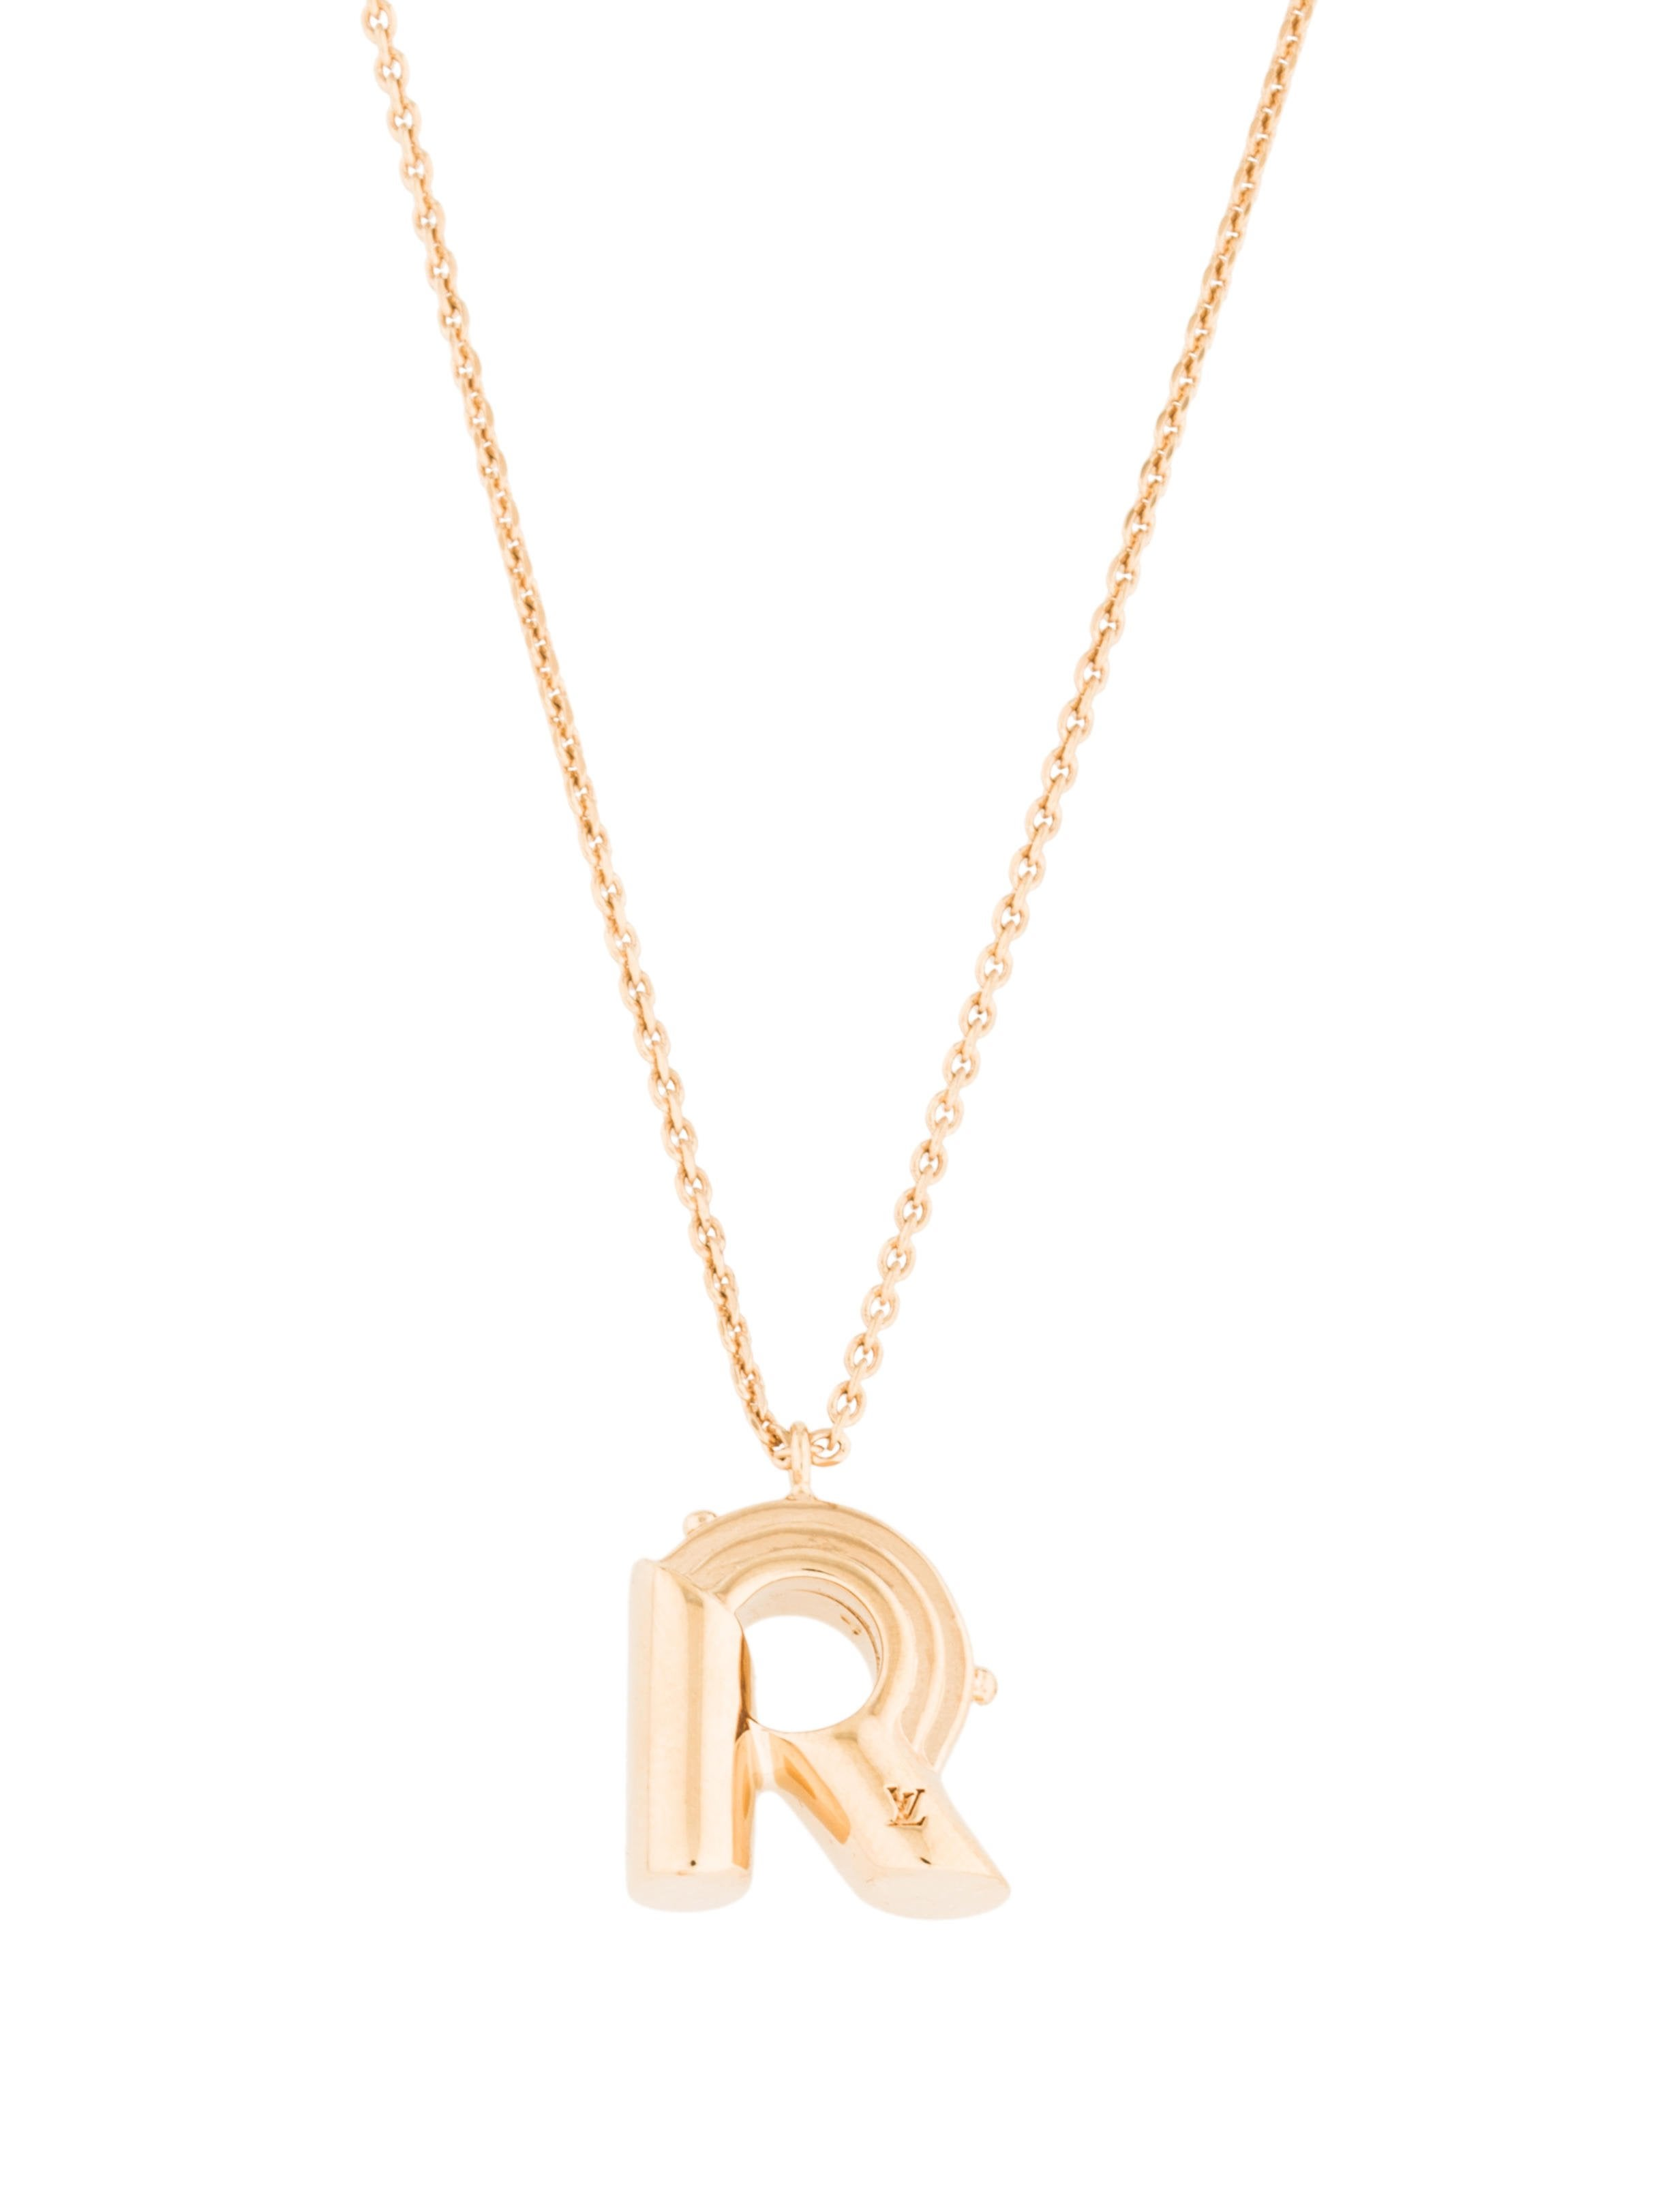 Louis Vuitton Letter Necklace Louis Vuitton Lv Me Necklace Letter R Necklaces